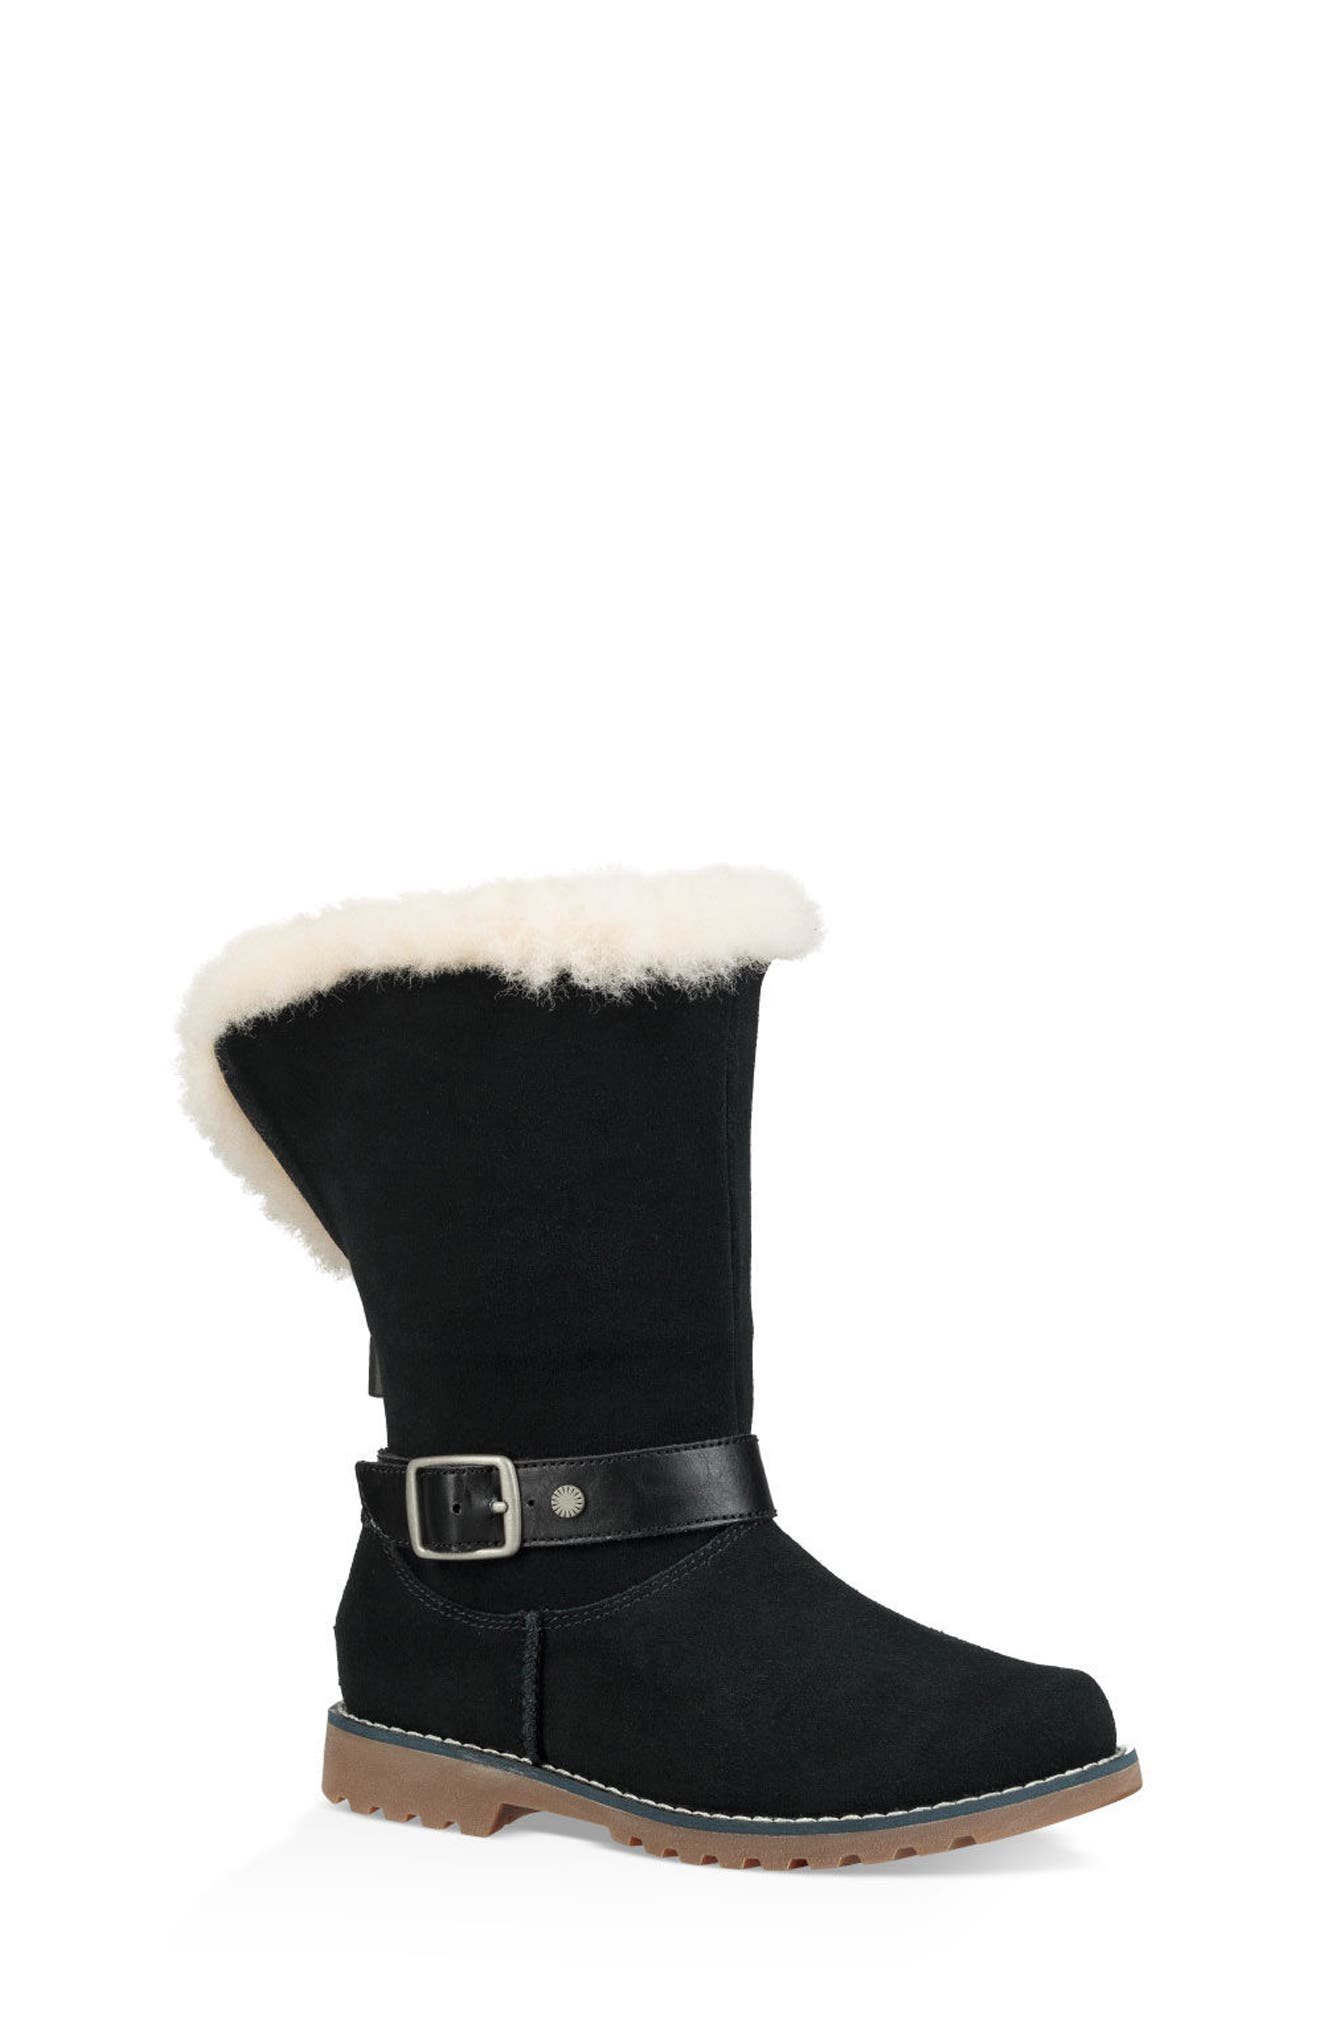 UGG<SUP>®</SUP>, Nessa Genuine Shearling Boot, Main thumbnail 1, color, BLACK